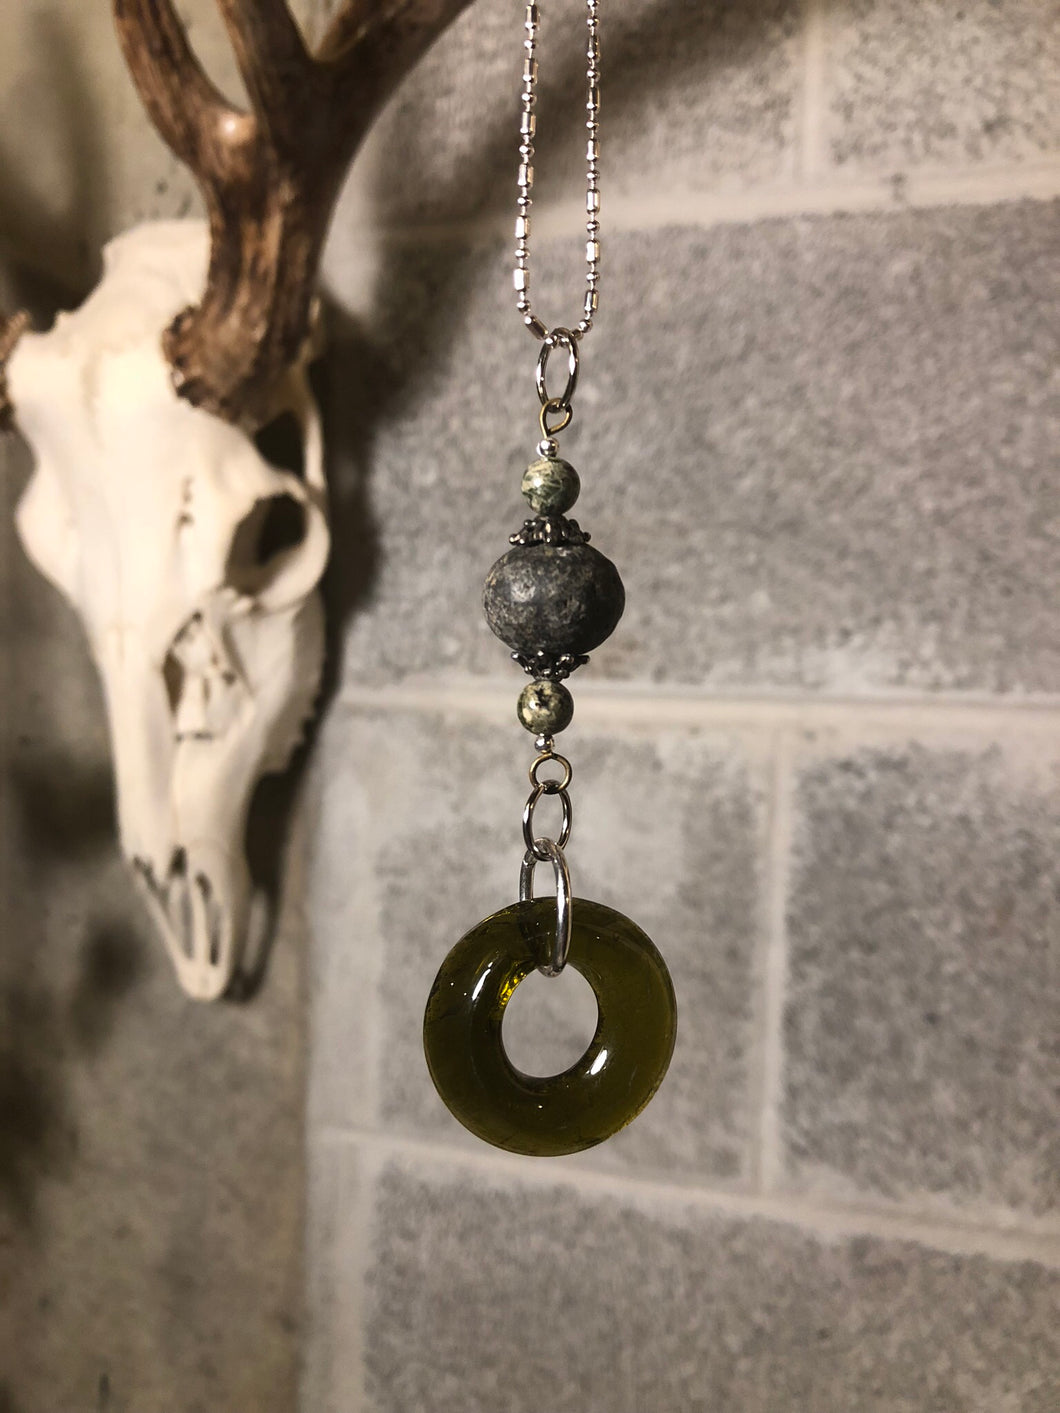 Upcycled wine bottle pendant